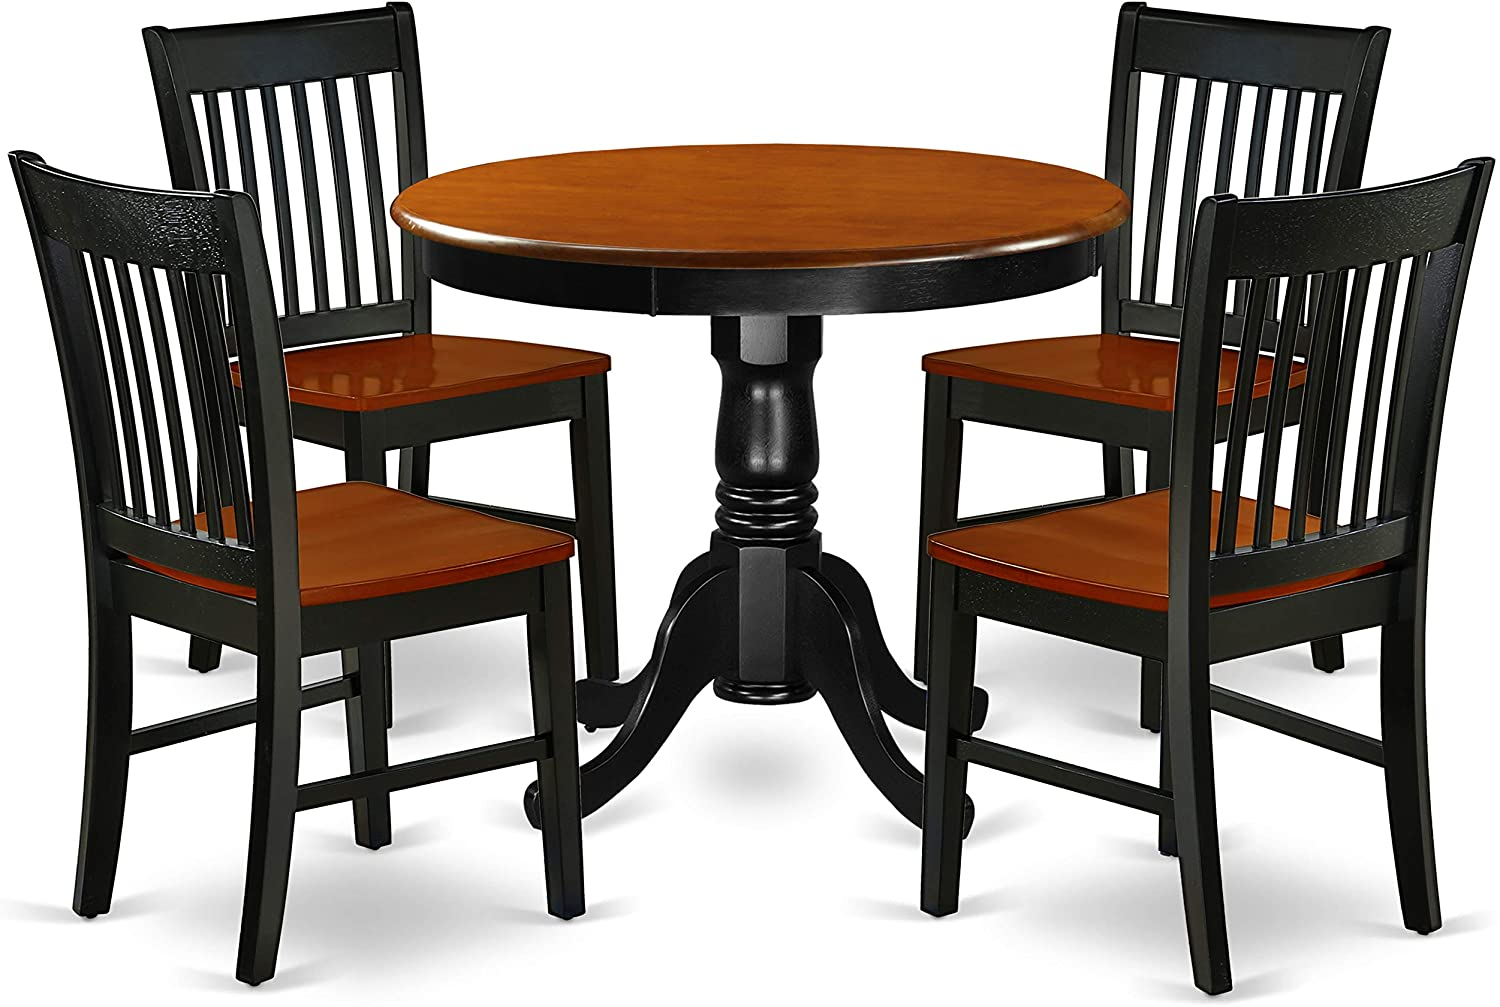 ANNO5-BCH-W 3Pc Round 36 Dinner Table And Two Wood Seat Dining Chairs